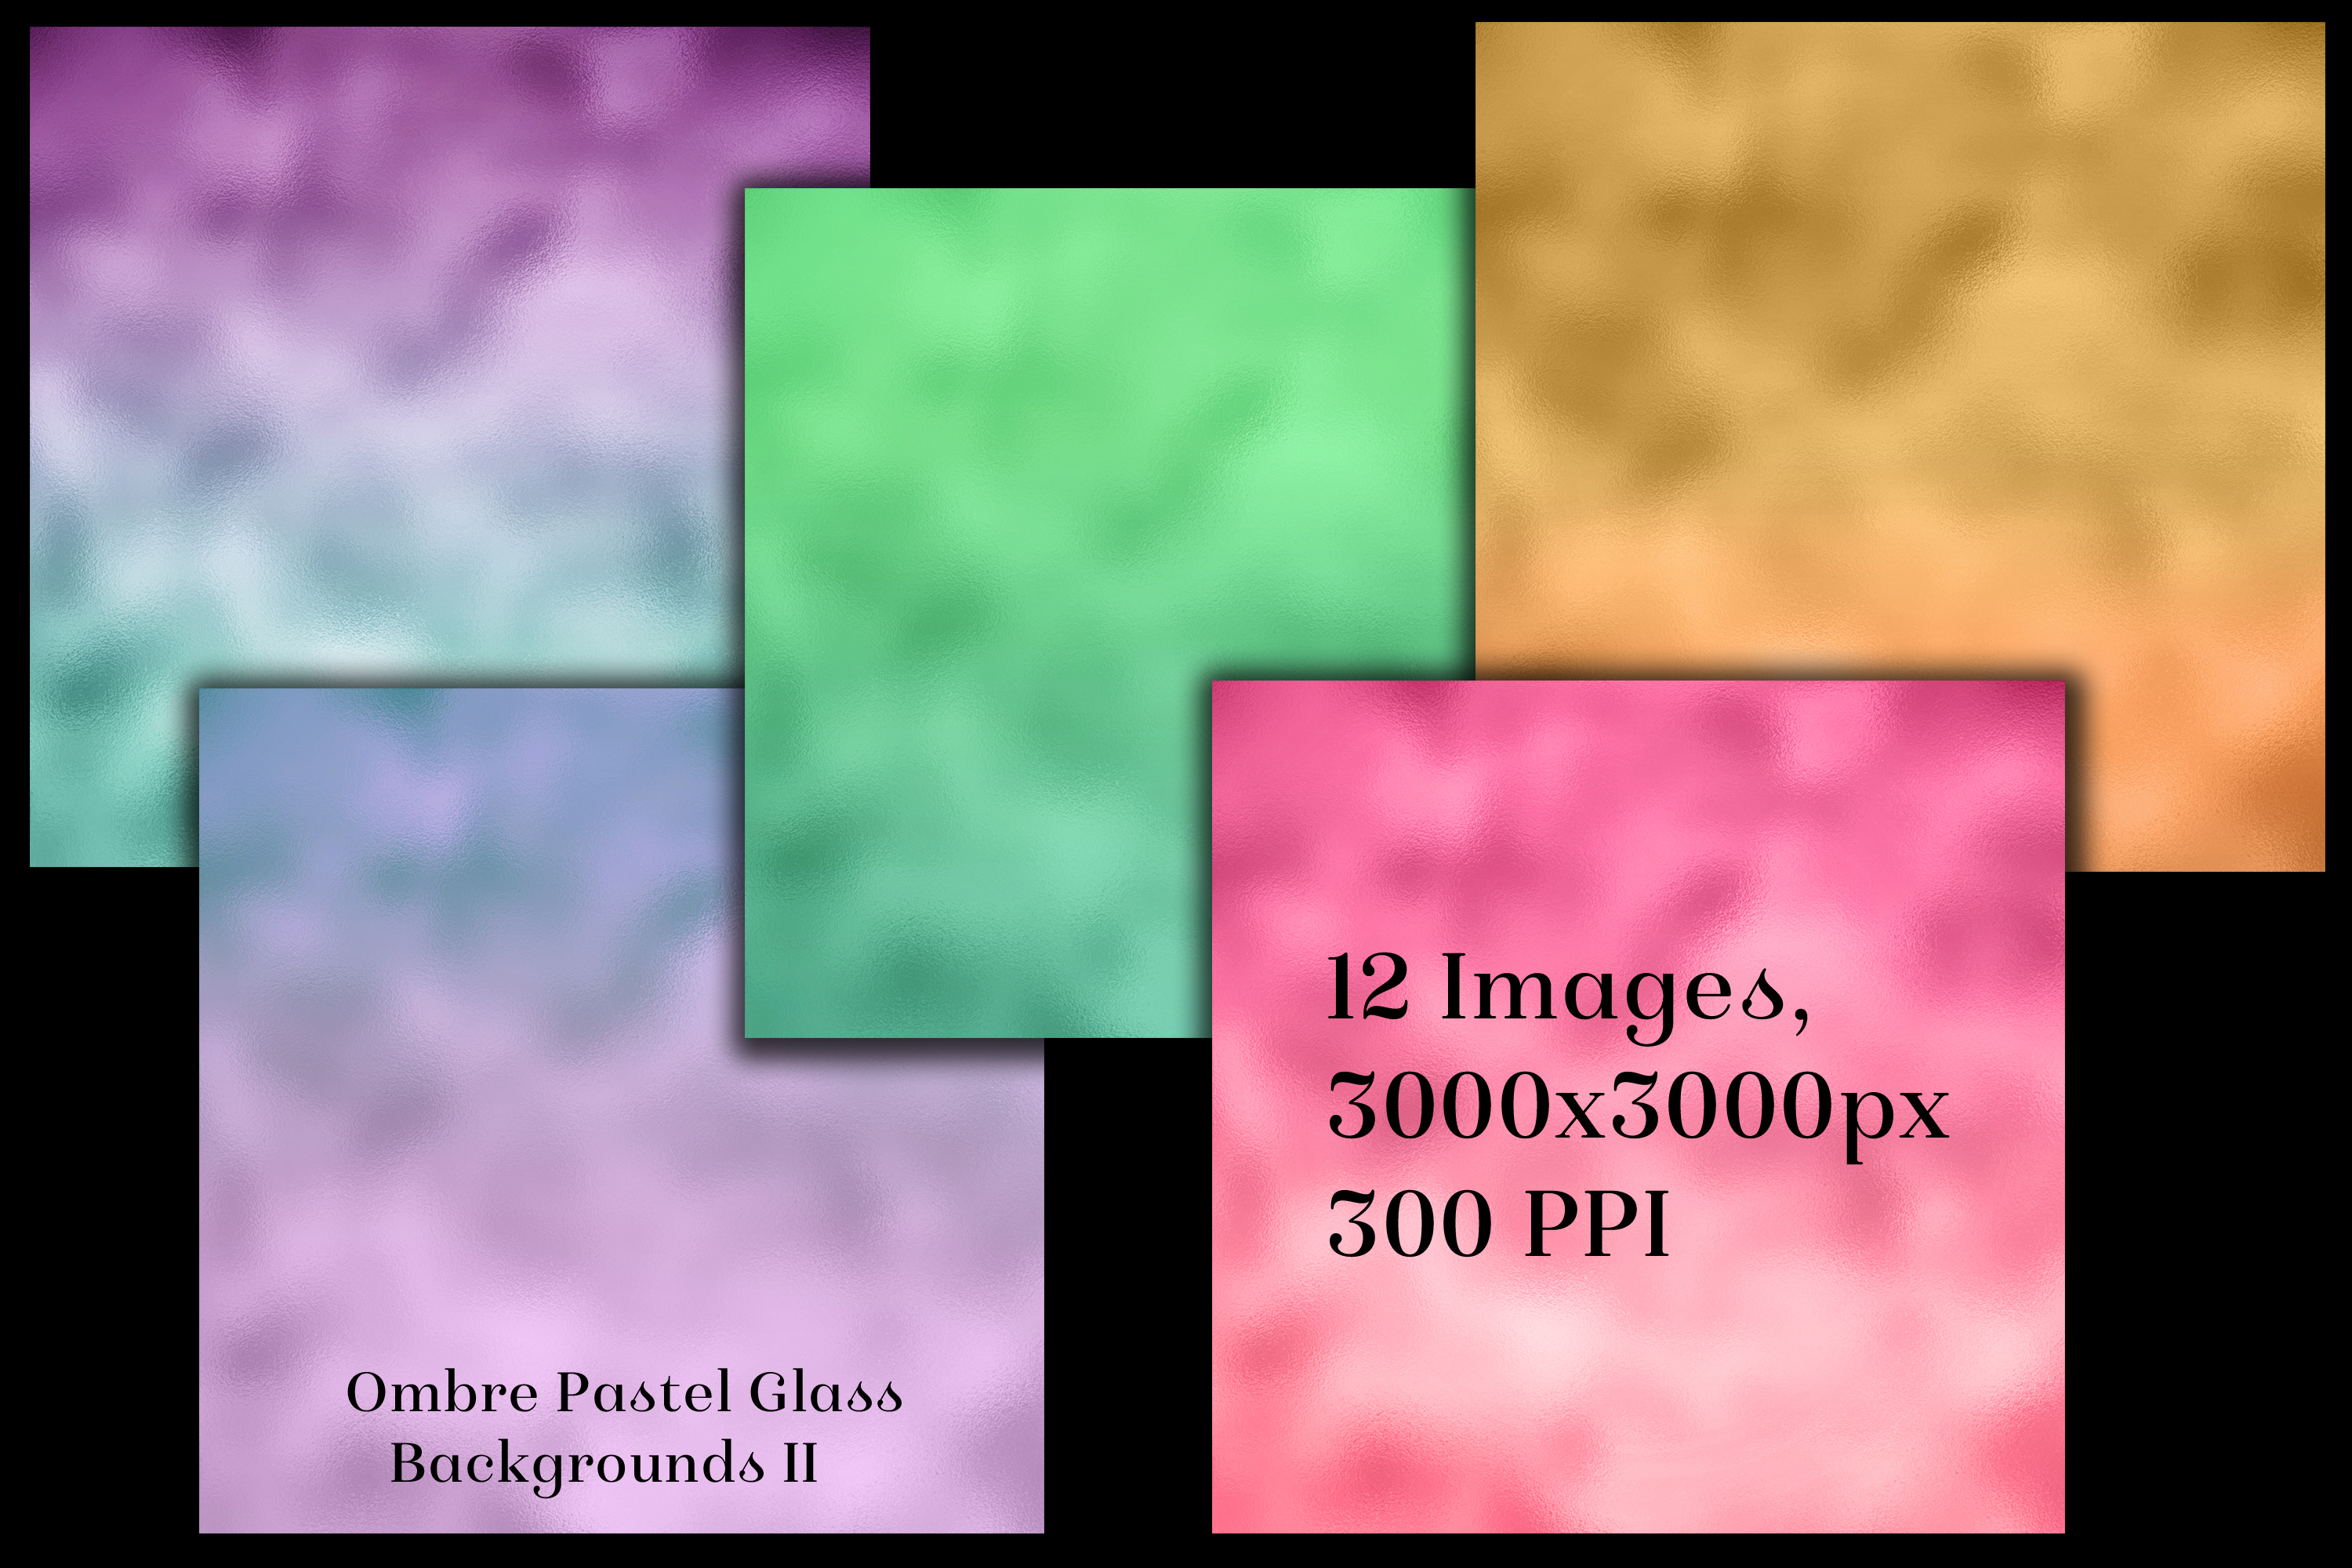 Ombre Pastel Glass Backgrounds II - 12 Image Textures Set example image 2